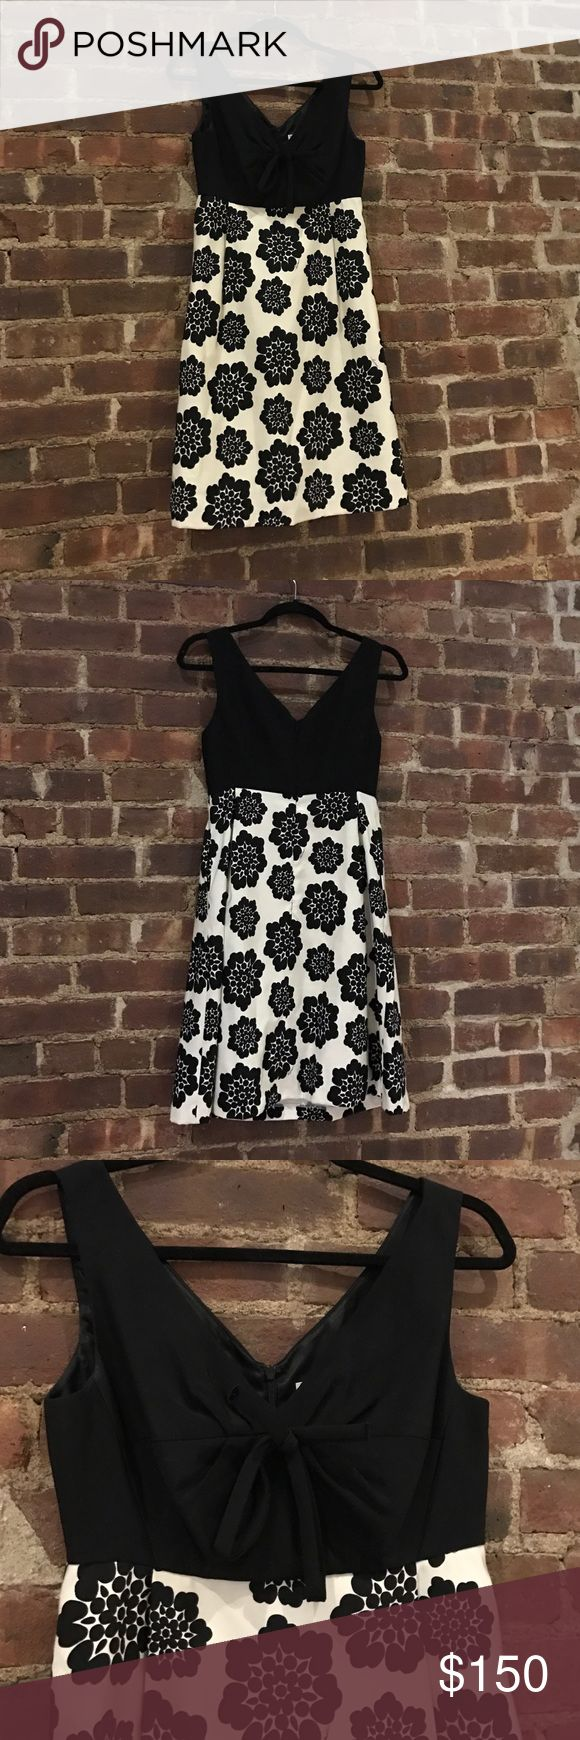 Milly black and white/cream cocktail dress size 2 Milly black and white/cream floral cocktail dress with a bow on the bust and POCKETS!  Size 2. Tons of life left! Classy dress for any occasion from work parties to weddings! Milly Dresses Mini